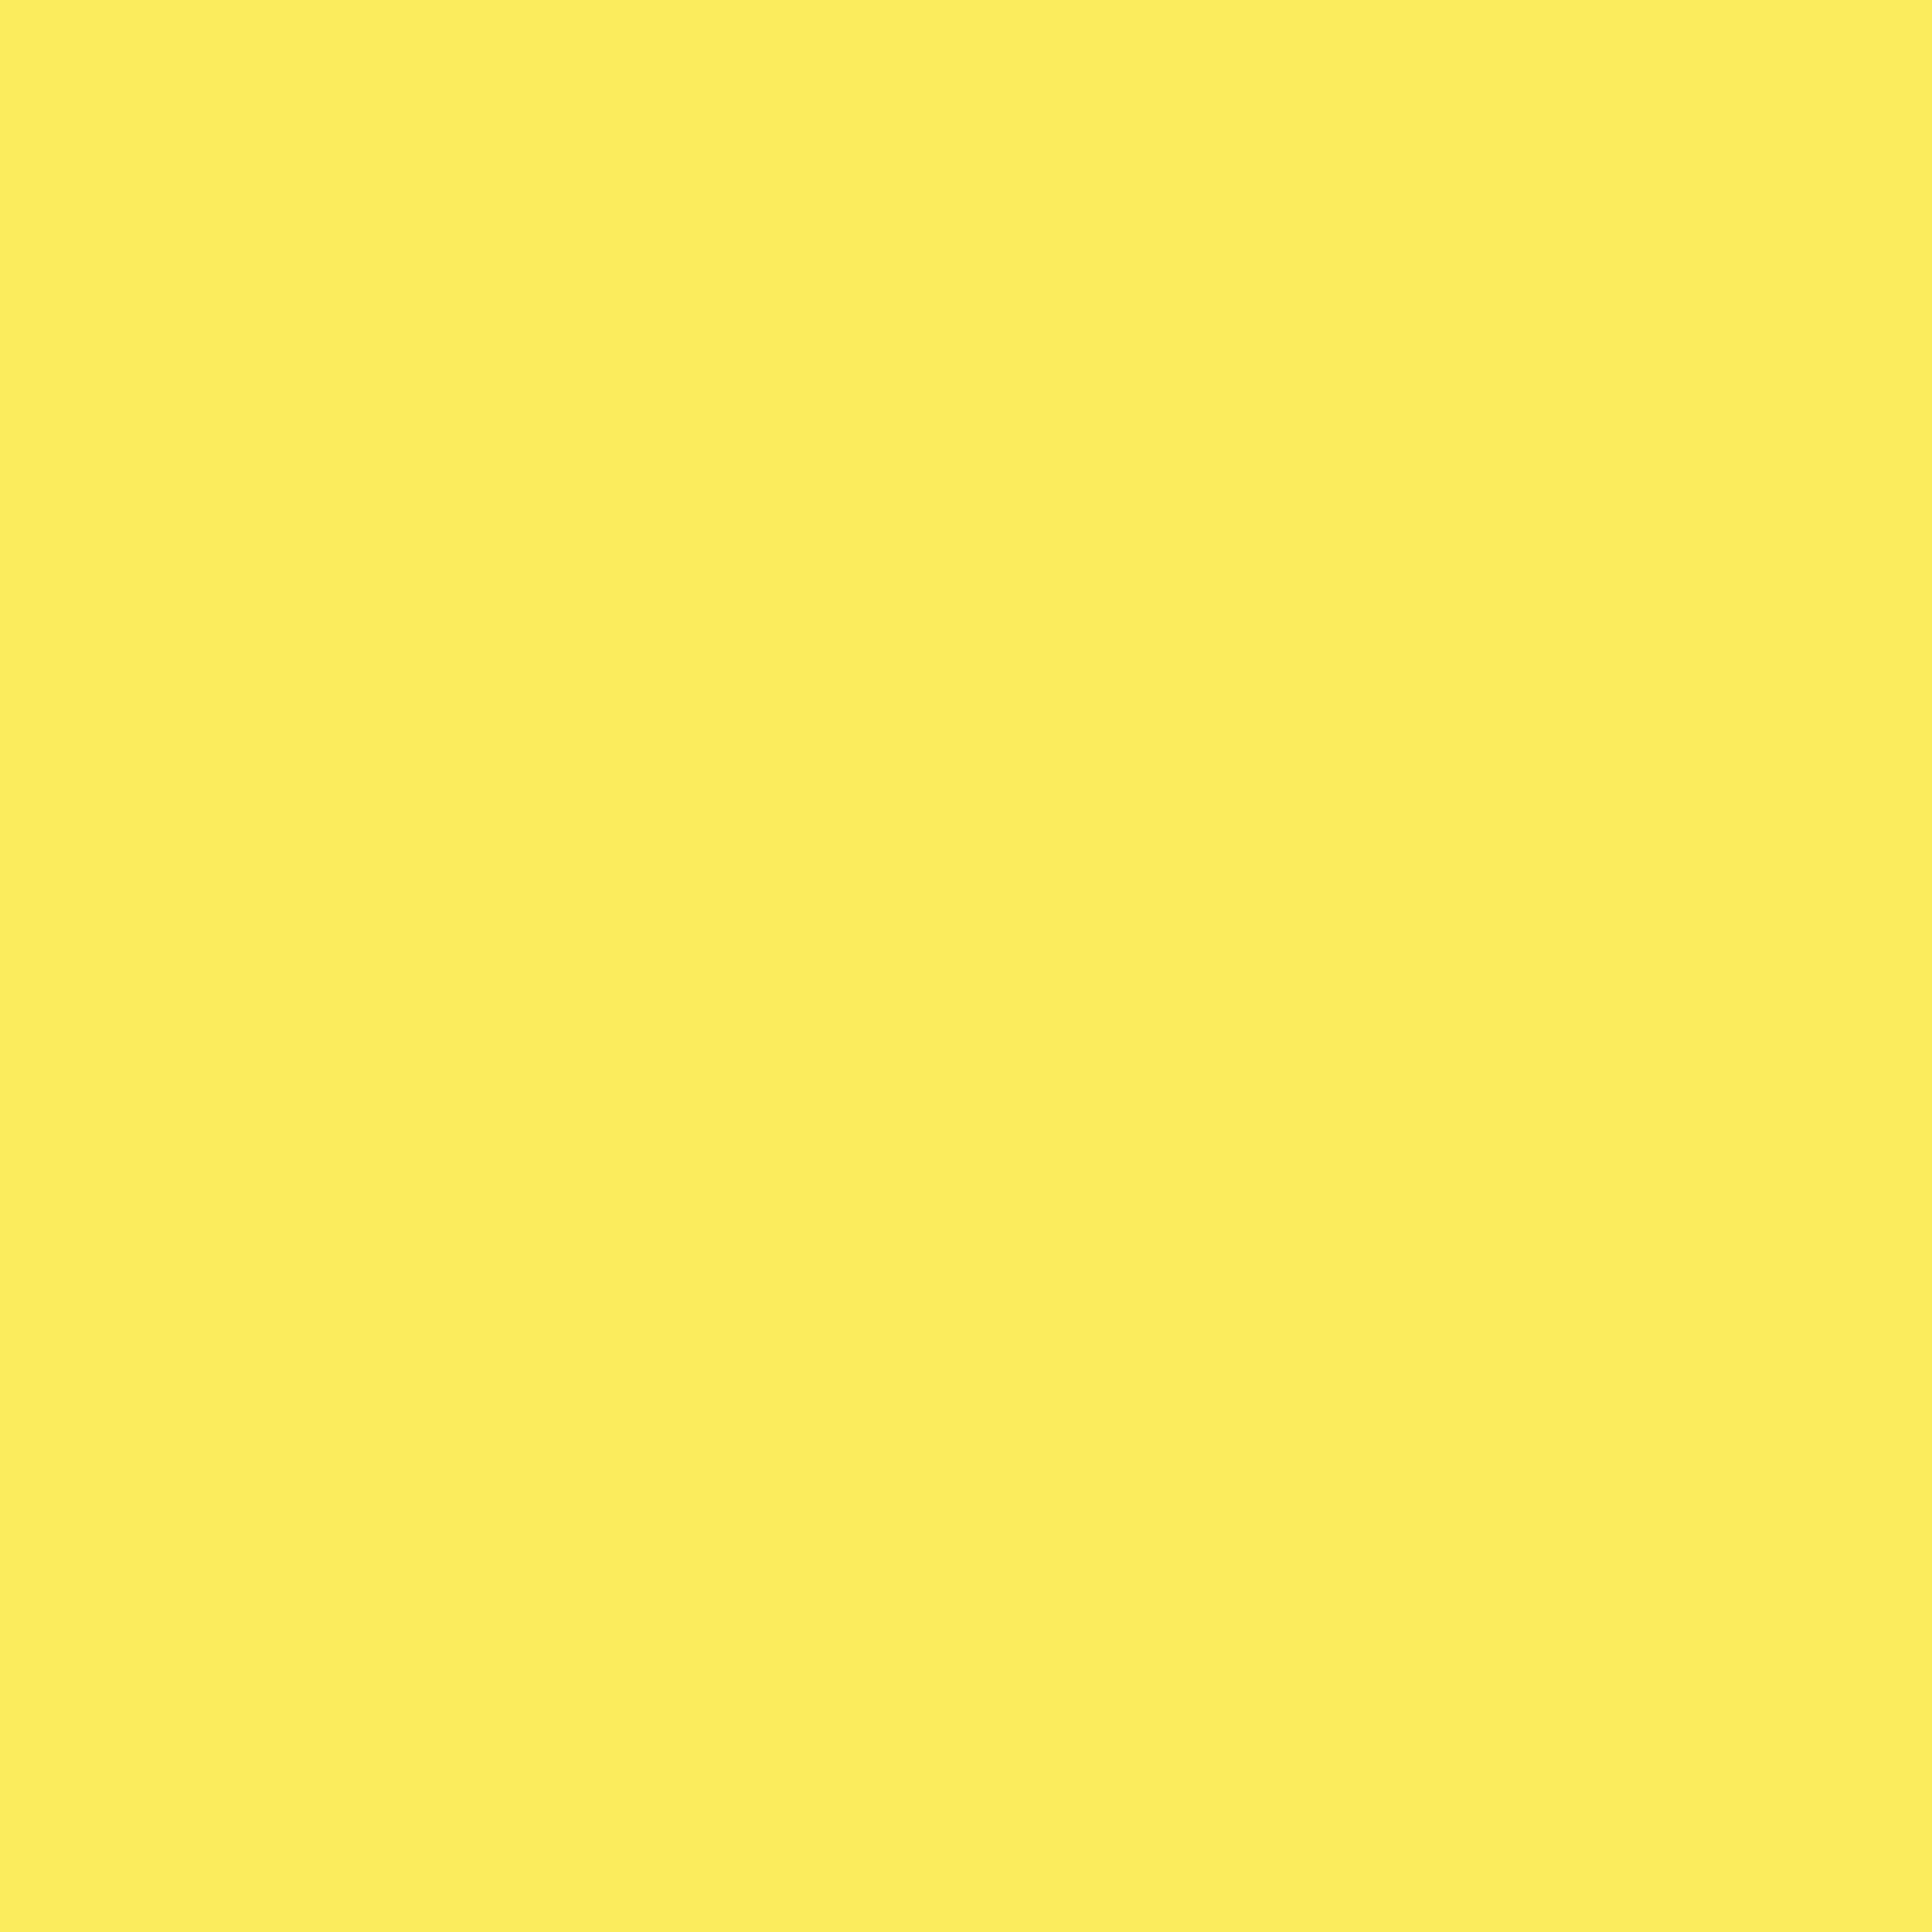 2732x2732 Corn Solid Color Background